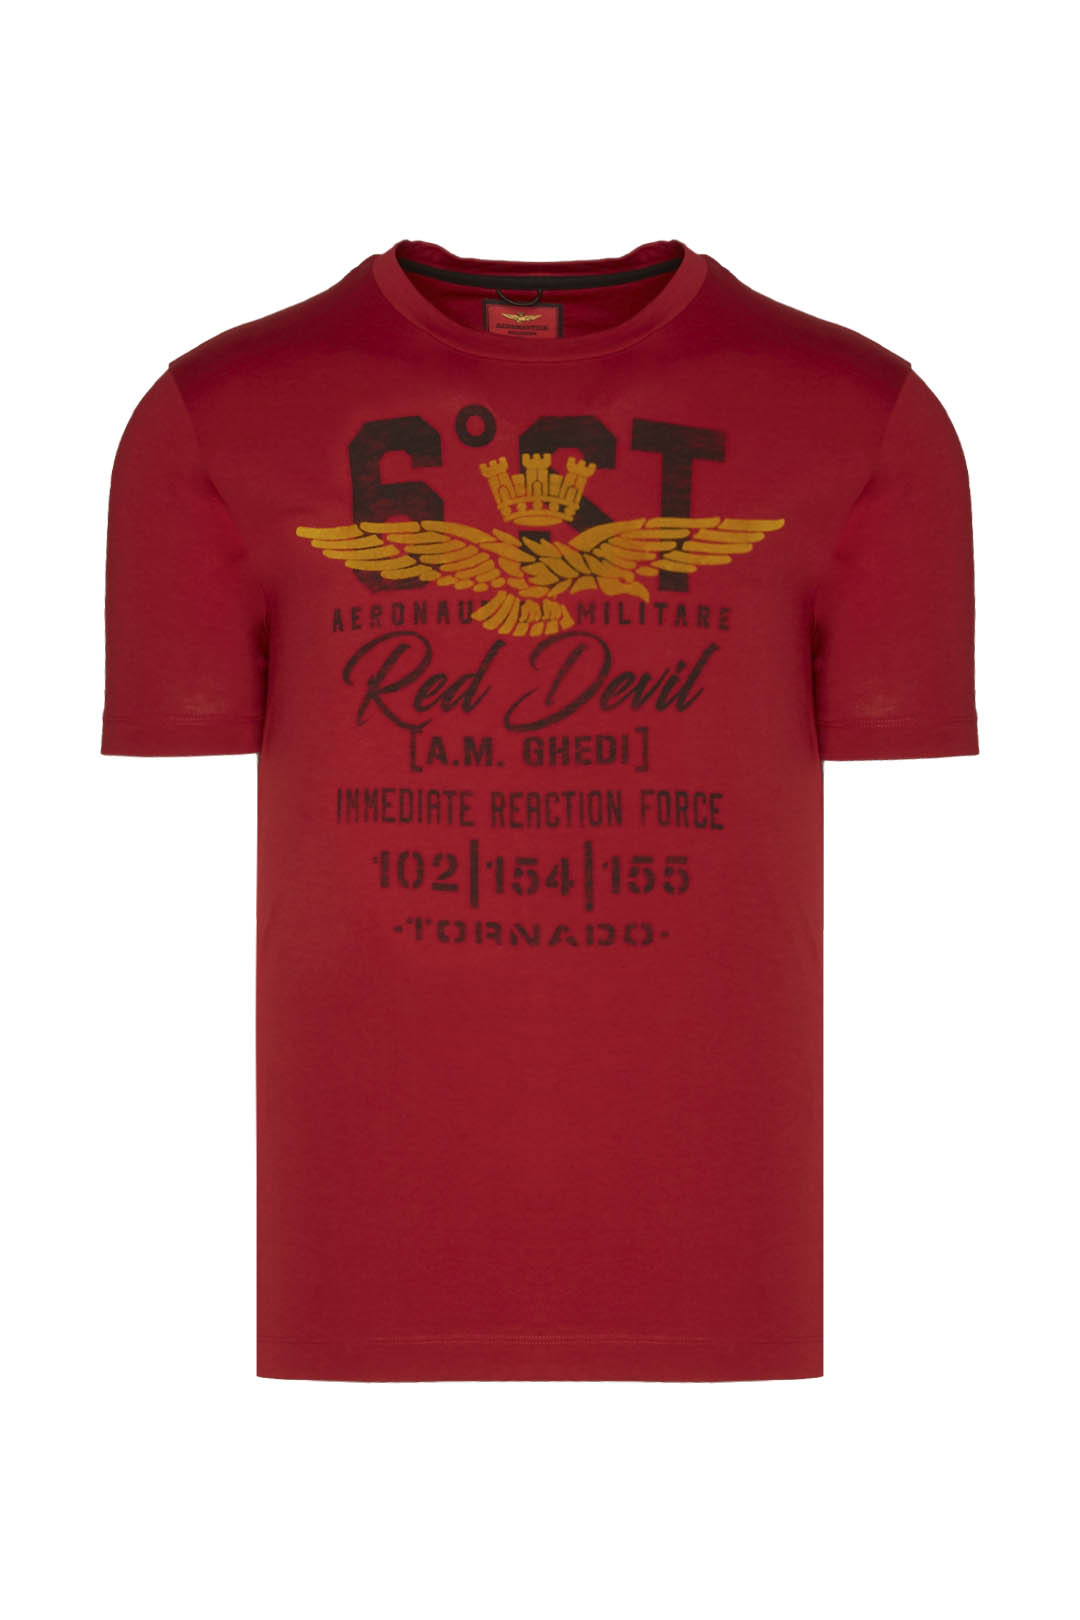 6th Wing Red Devil flock printed t-shirt 1